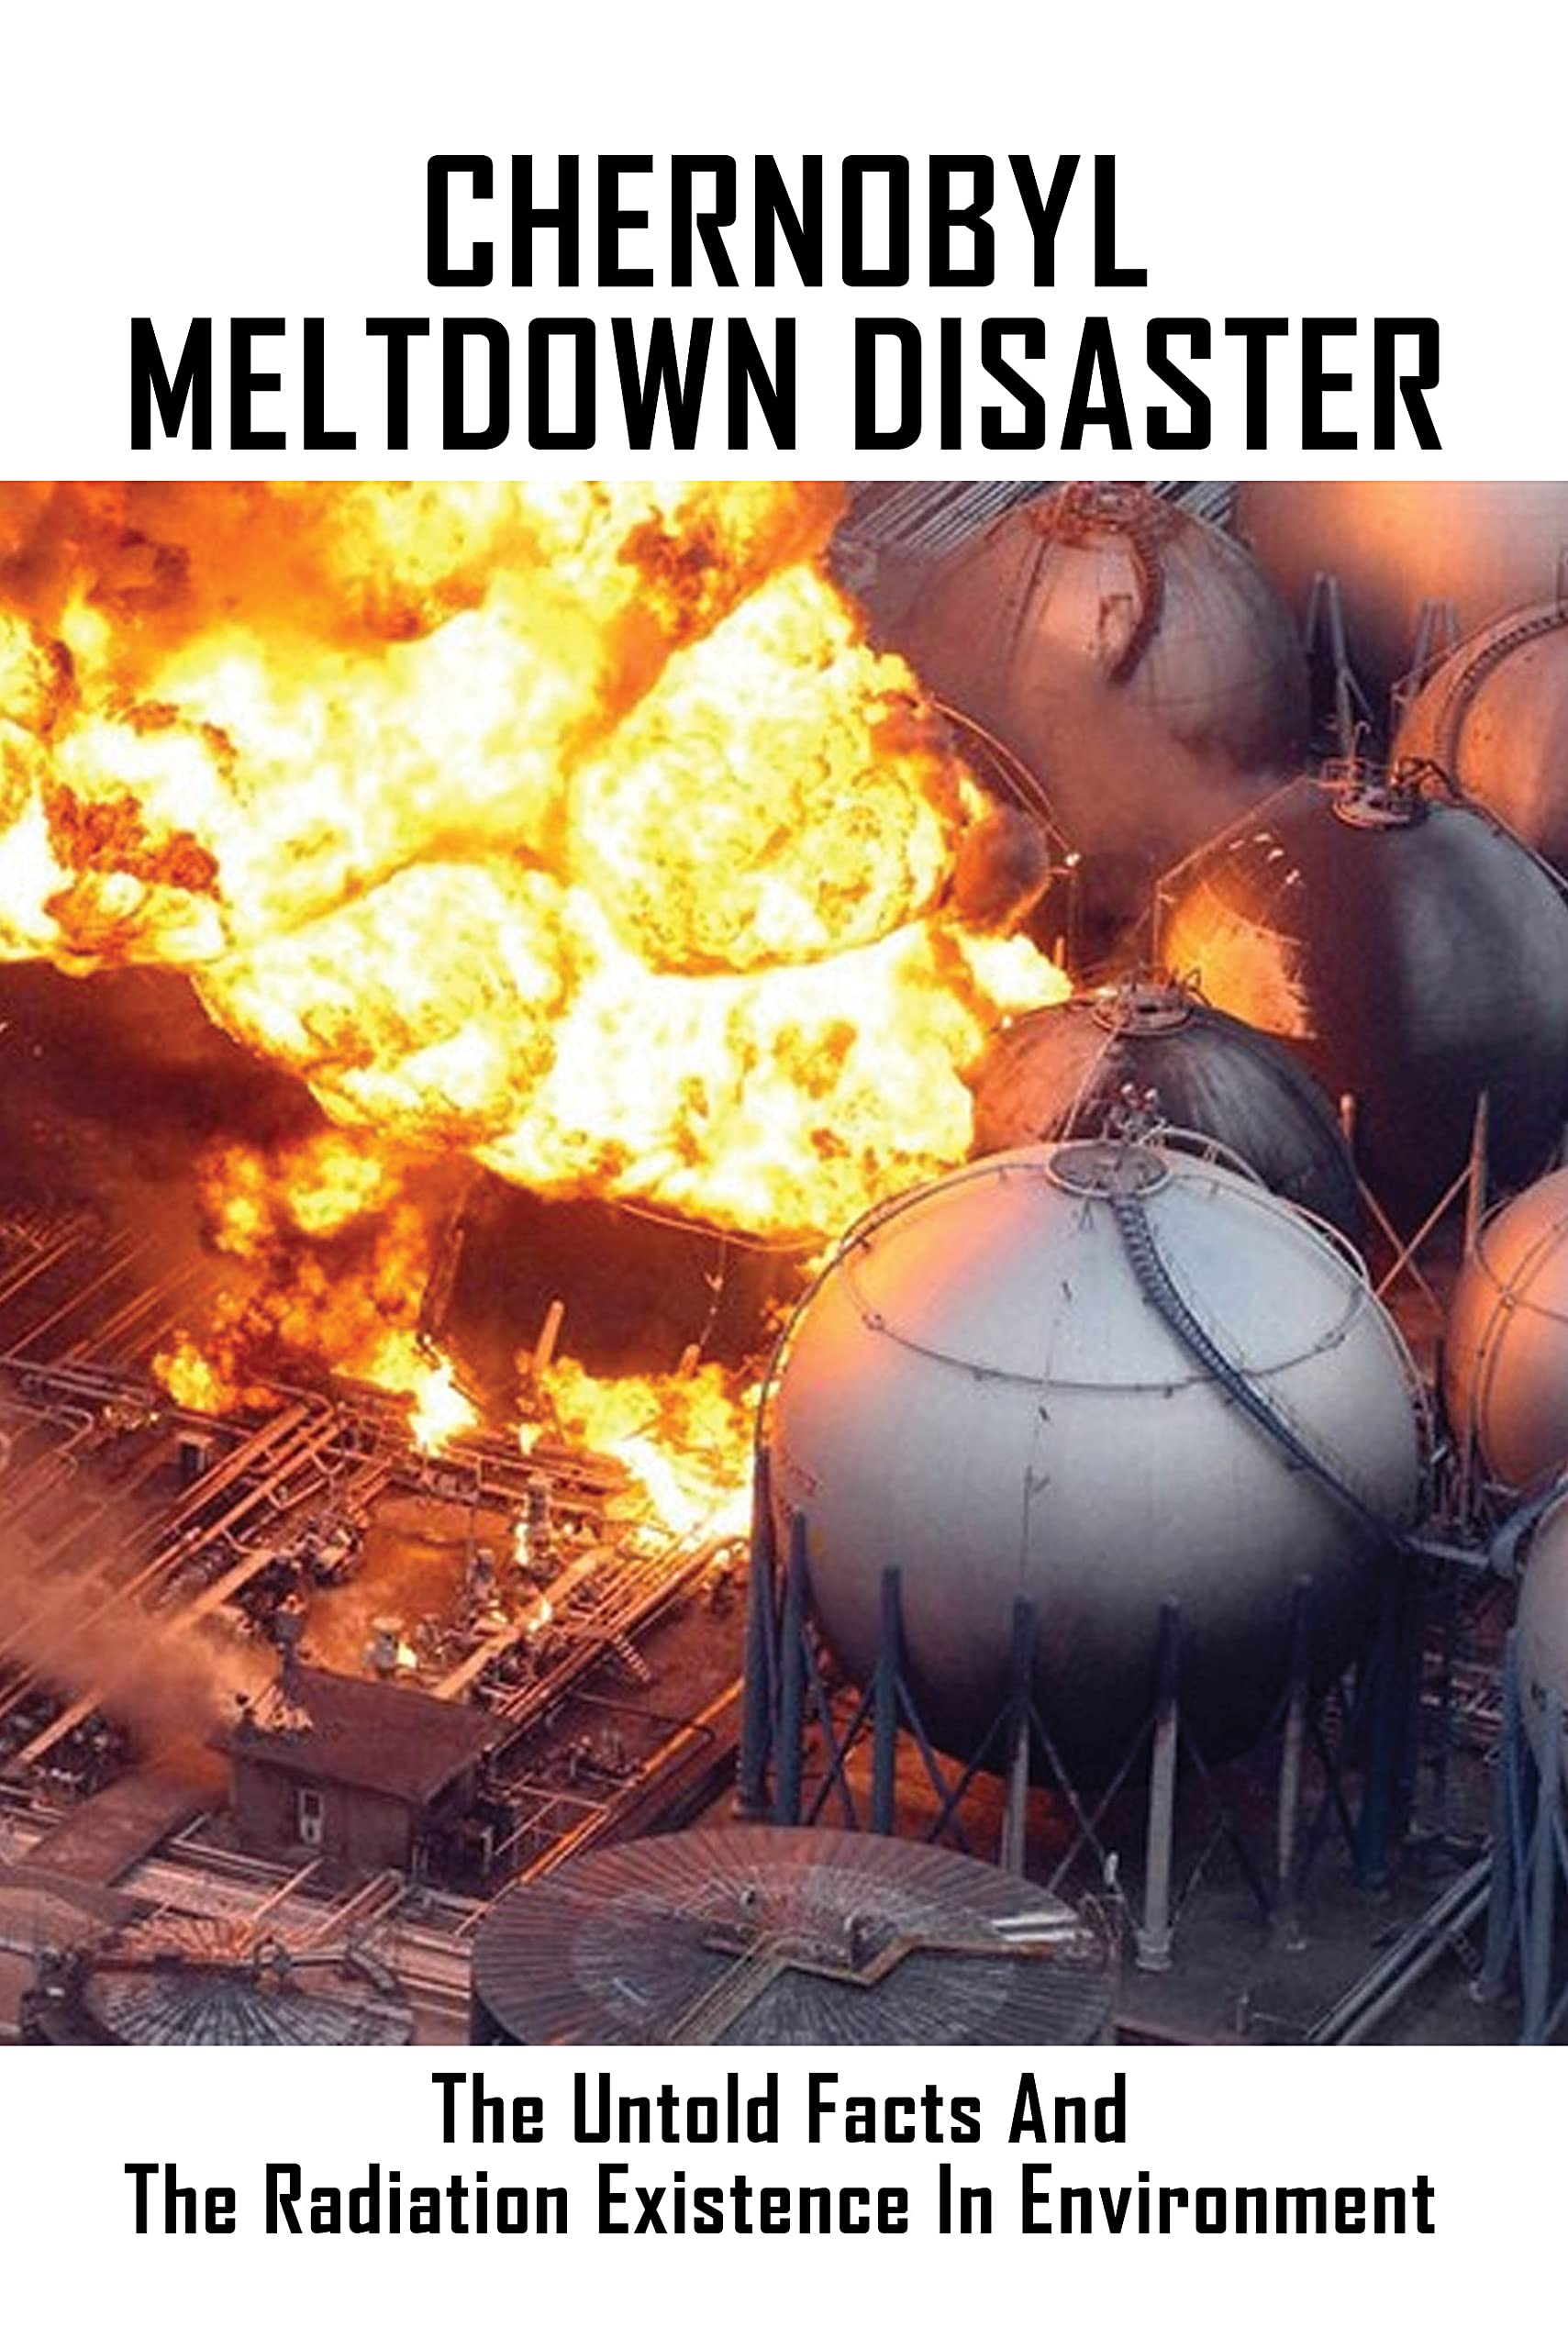 Chernobyl Meltdown Disaster: The Untold Facts And The Radiation Existence In Environment: Chernobyl The History Of A Nuclear Catastrophe